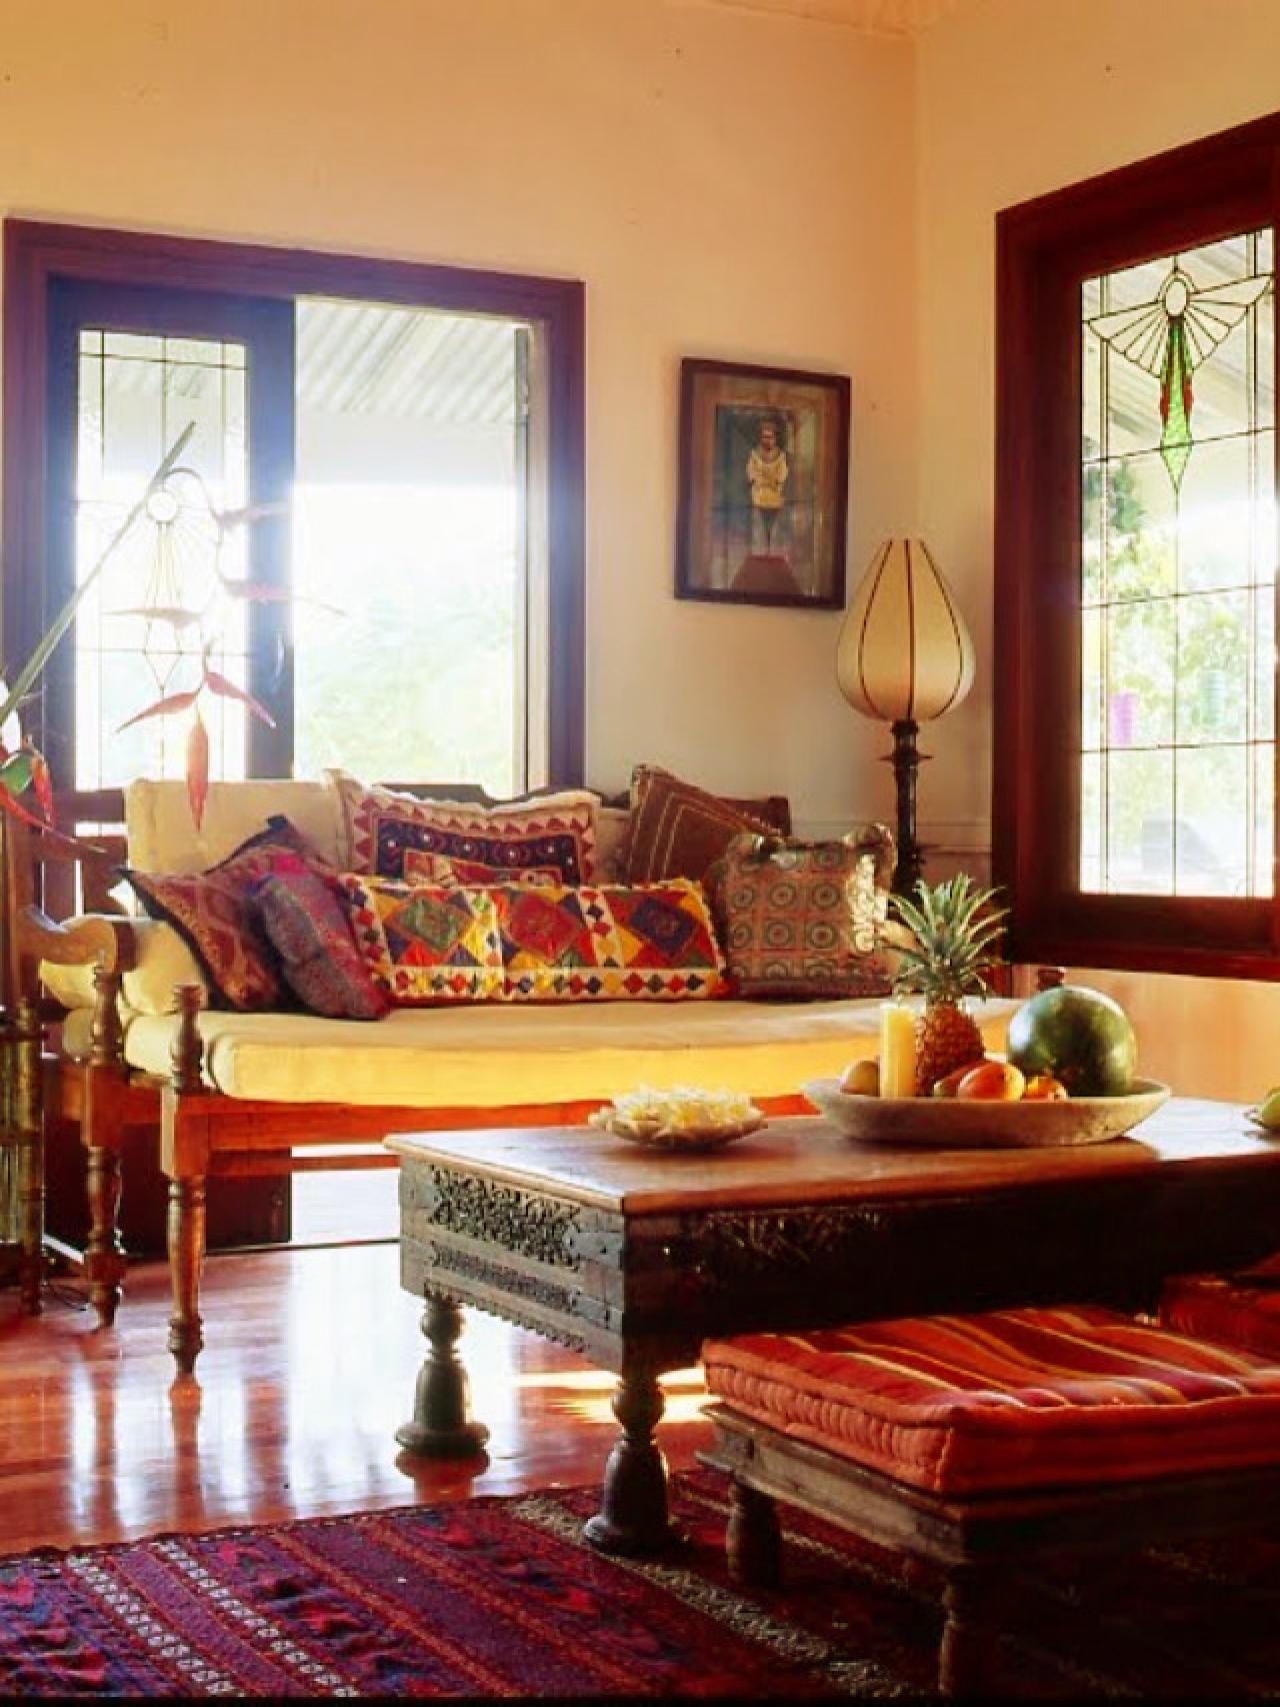 12 spaces inspired by india interior design styles and for Living room interior design india